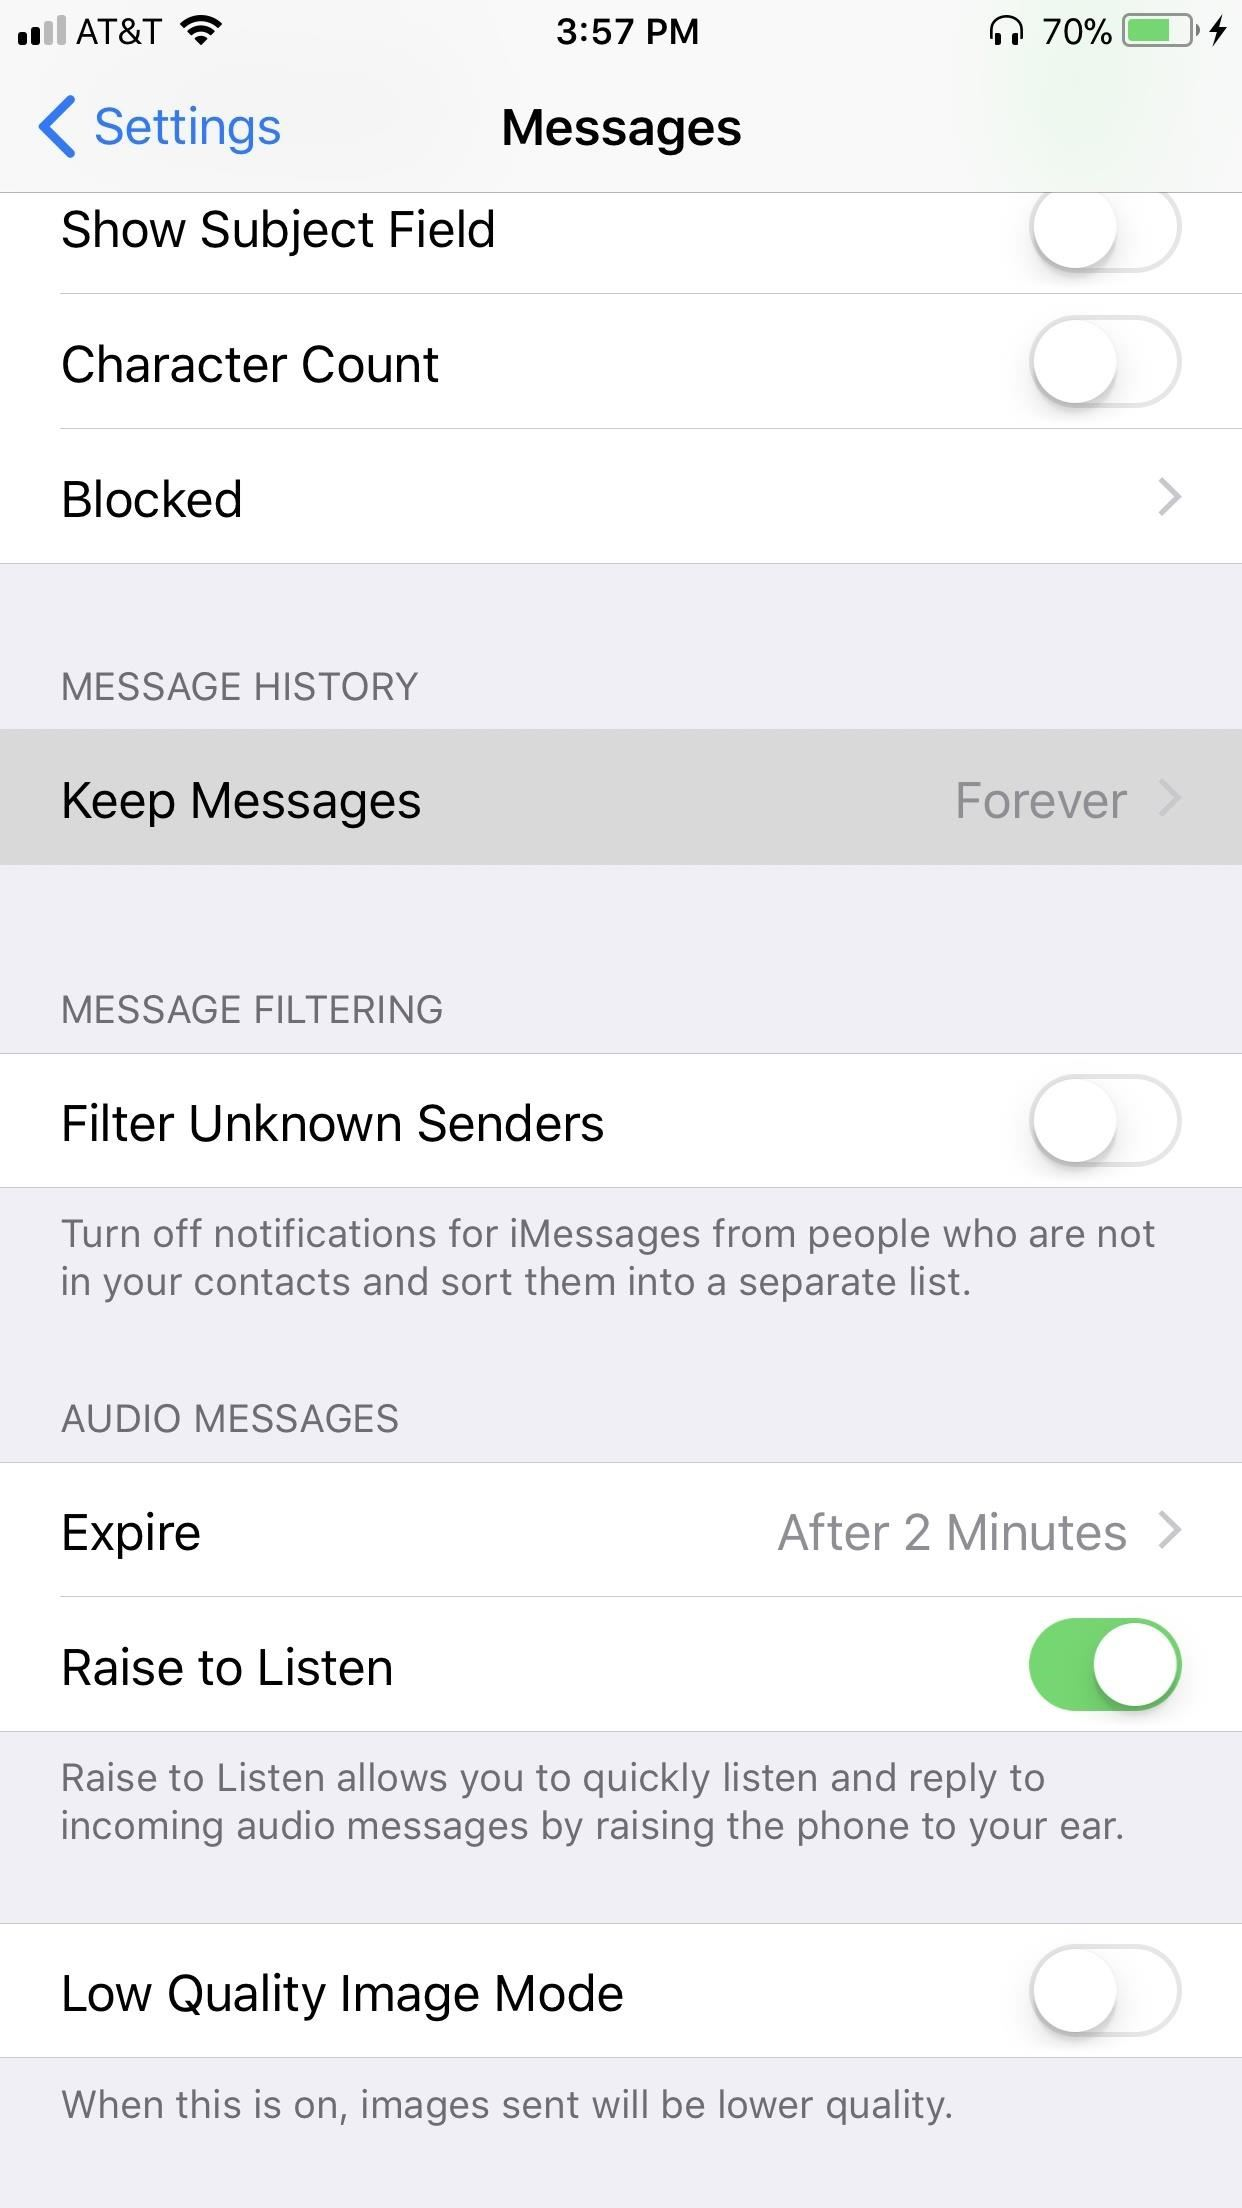 30 Privacy & Security Settings in iOS 12 You Should Check Right Now